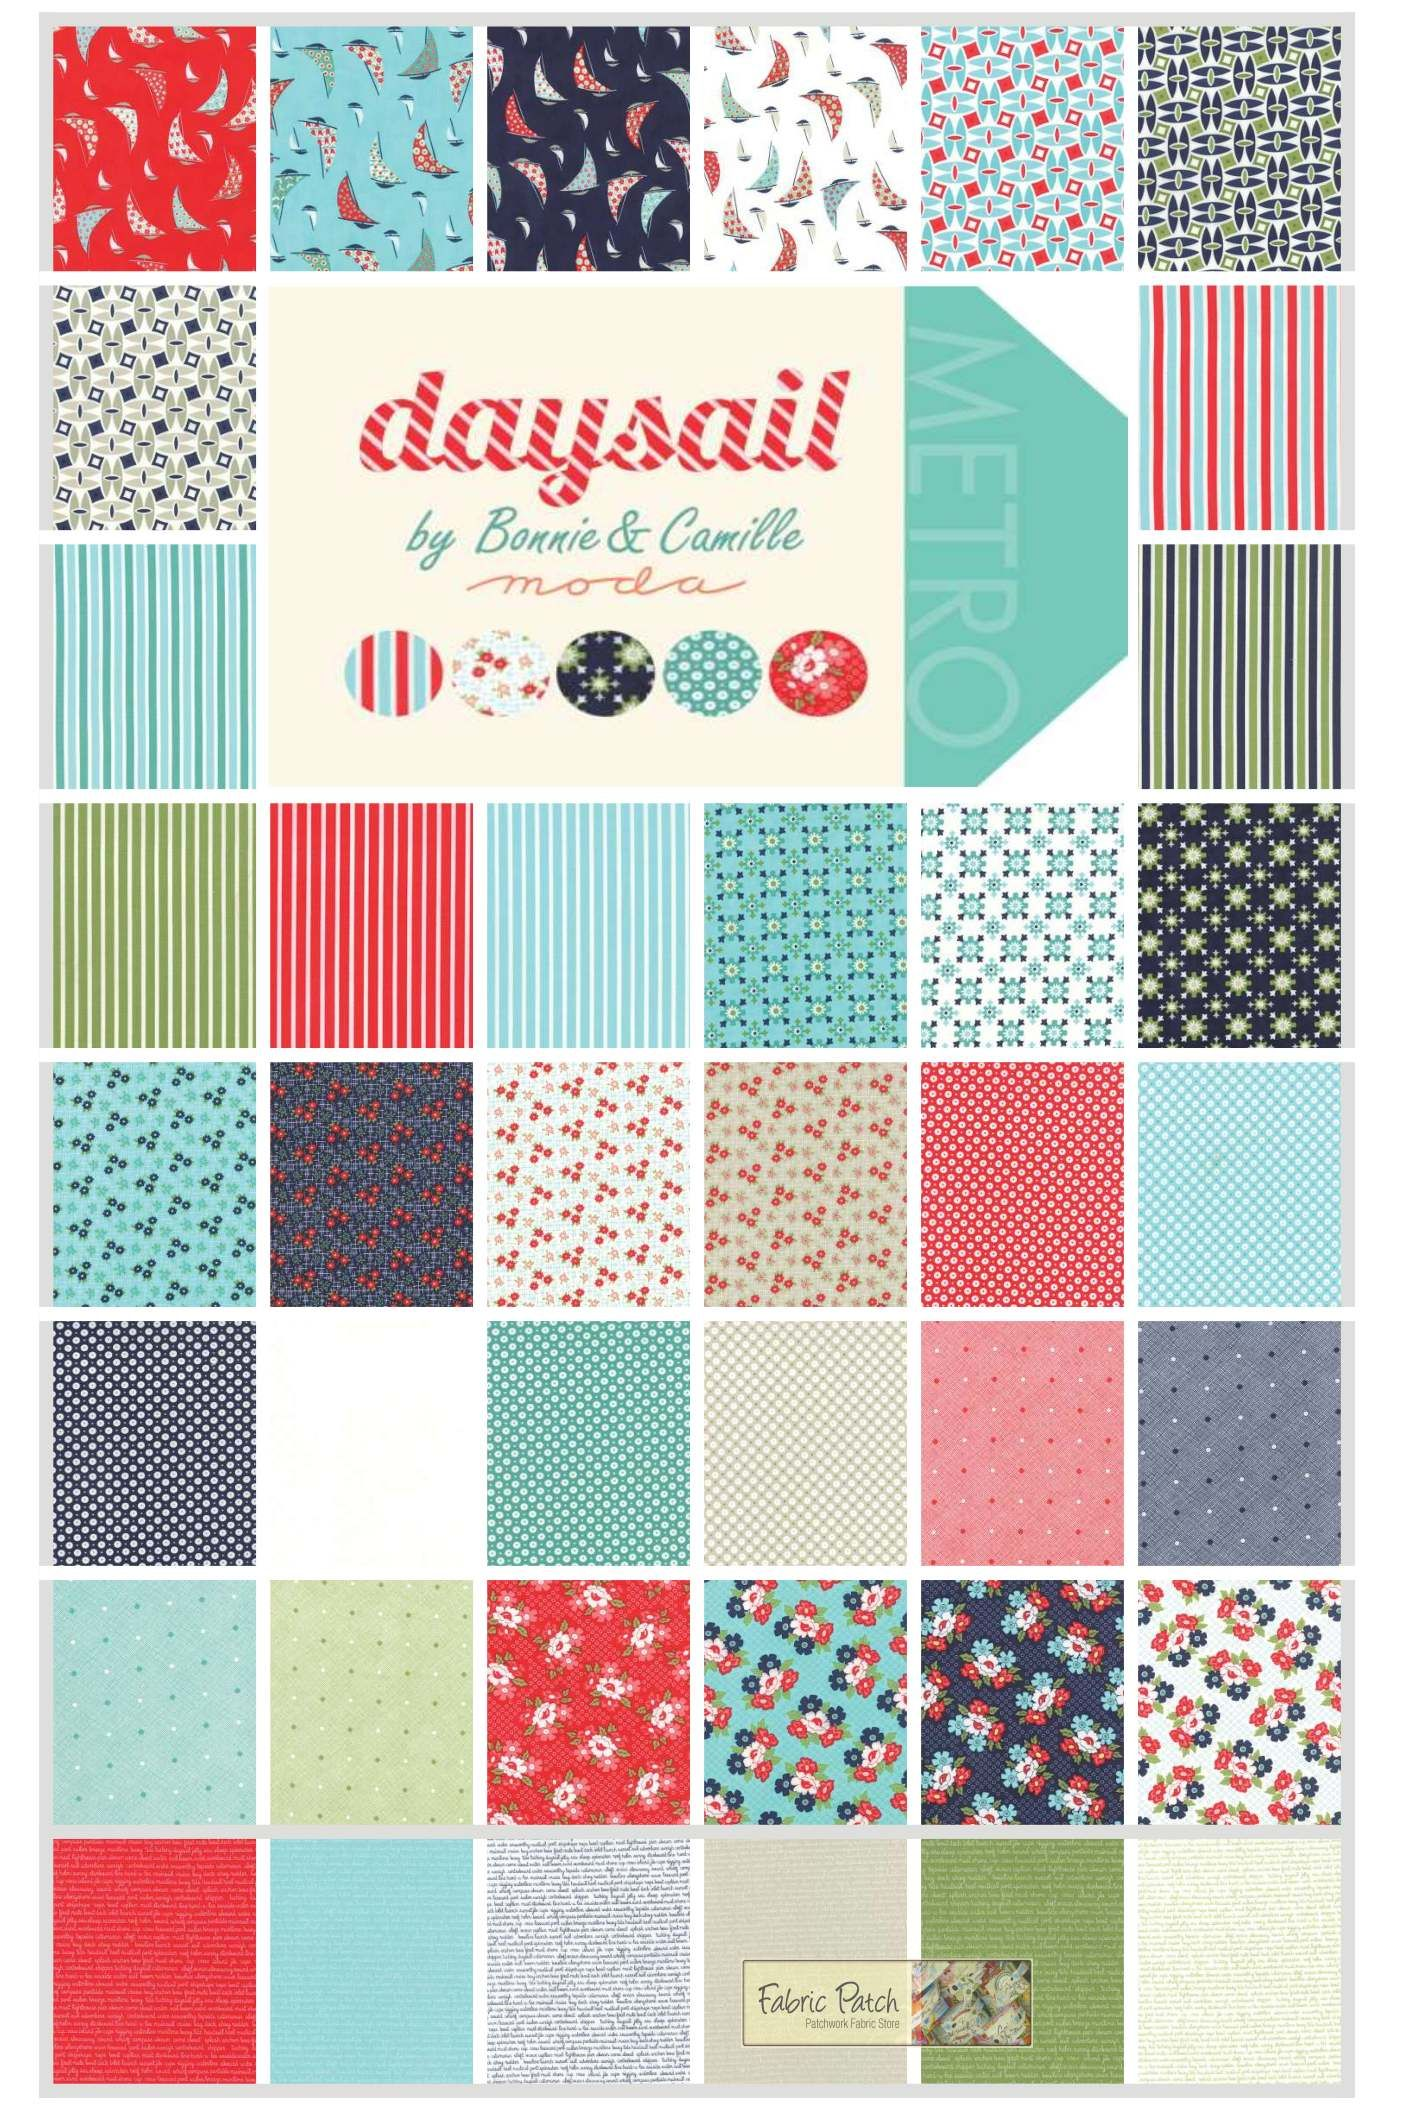 Daysail Jelly Roll Applique, patchwork and quilting fabric. Bonnie ... : moda quilting fabric - Adamdwight.com